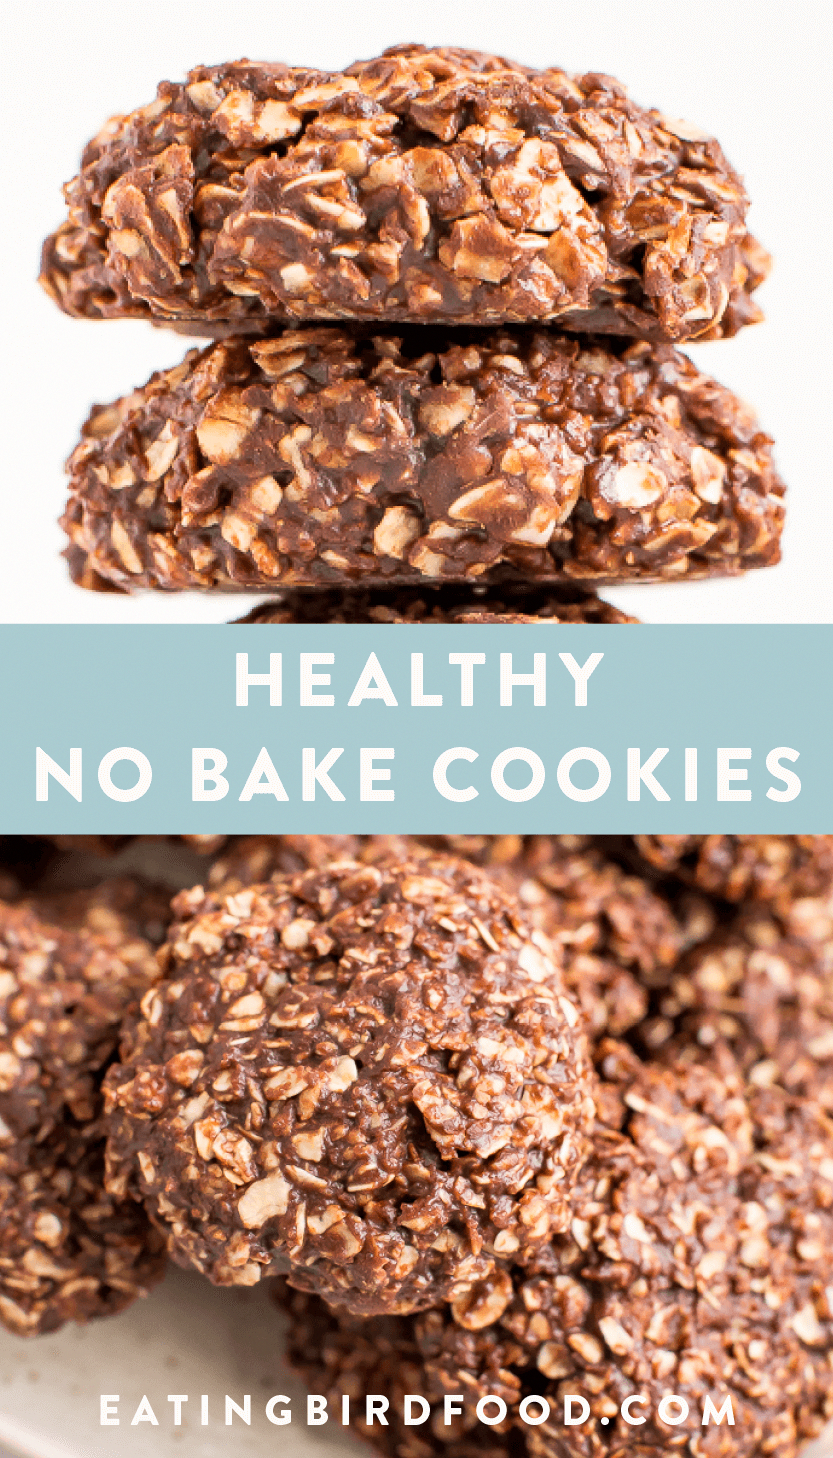 Peanut butter chocolate healthy no bake cookies made with half the amount of sugar in traditional no bake cookies and coconut oil instead of butter. Dairy-free, vegan and refined sugar free.#vegan